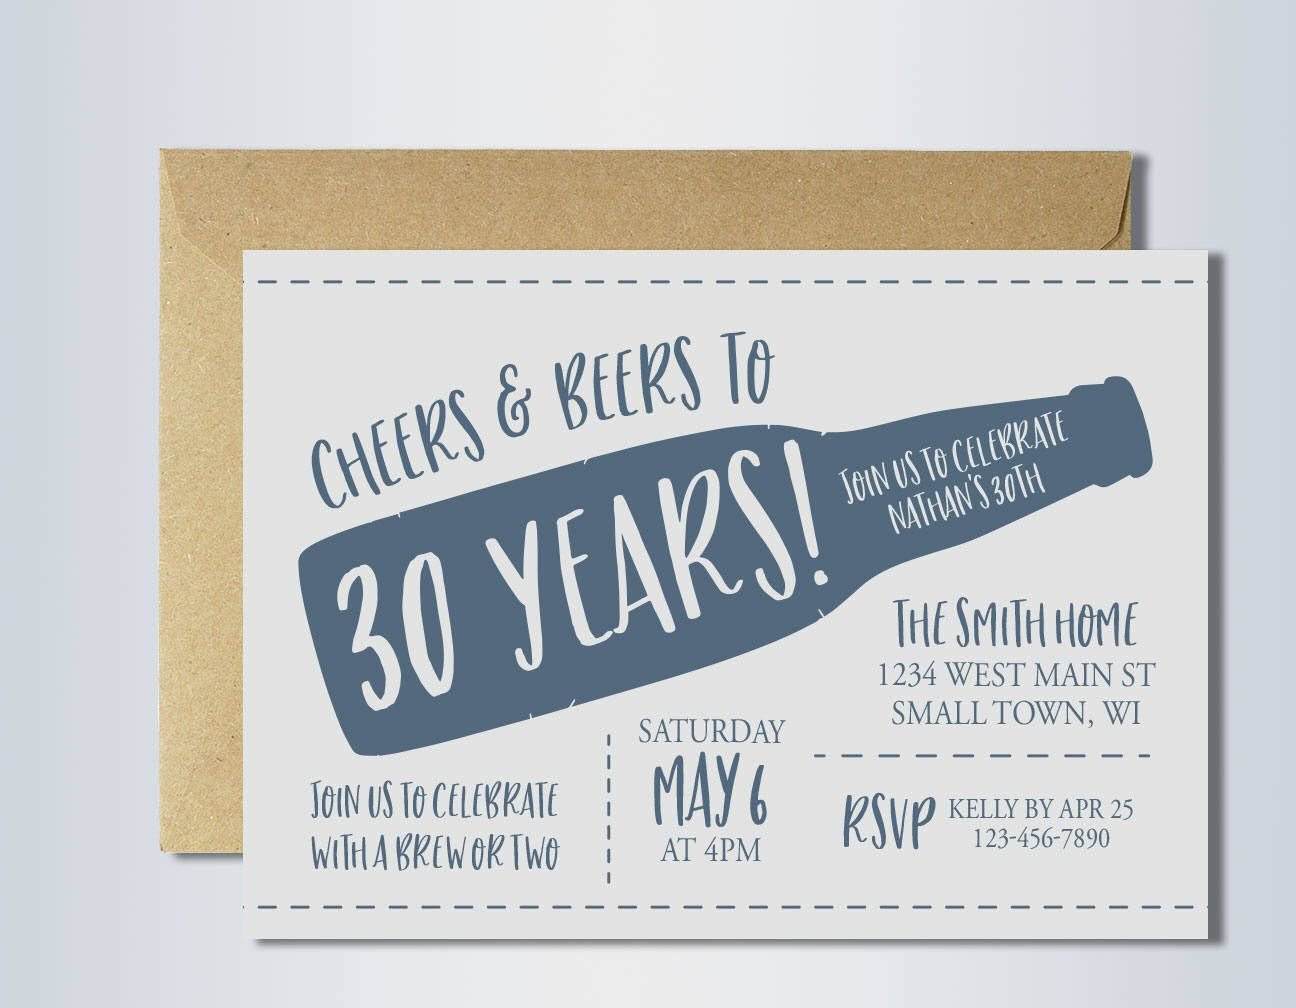 30th birthday invitation | cheers and beers | cheers to 30 years ...